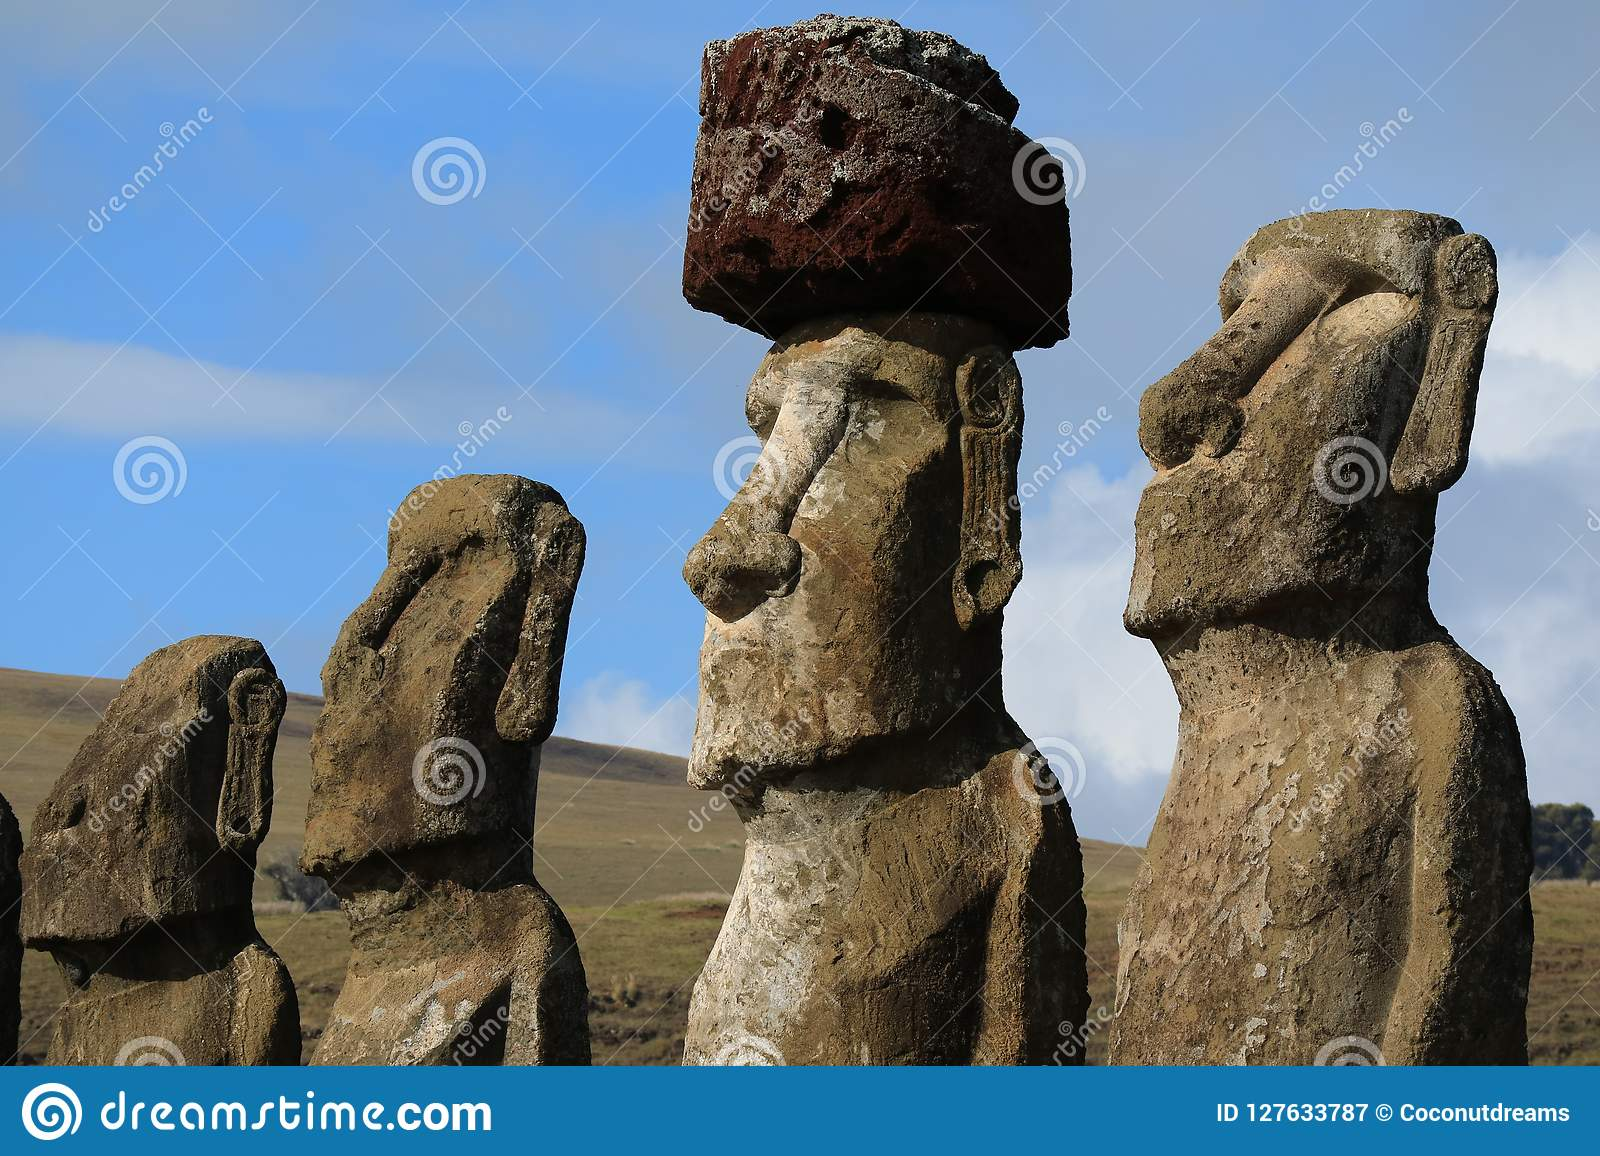 Four of fifteen huge Moai statues of Ahu Tongariki ceremonial platform on Easter Island archaeological site, Chile